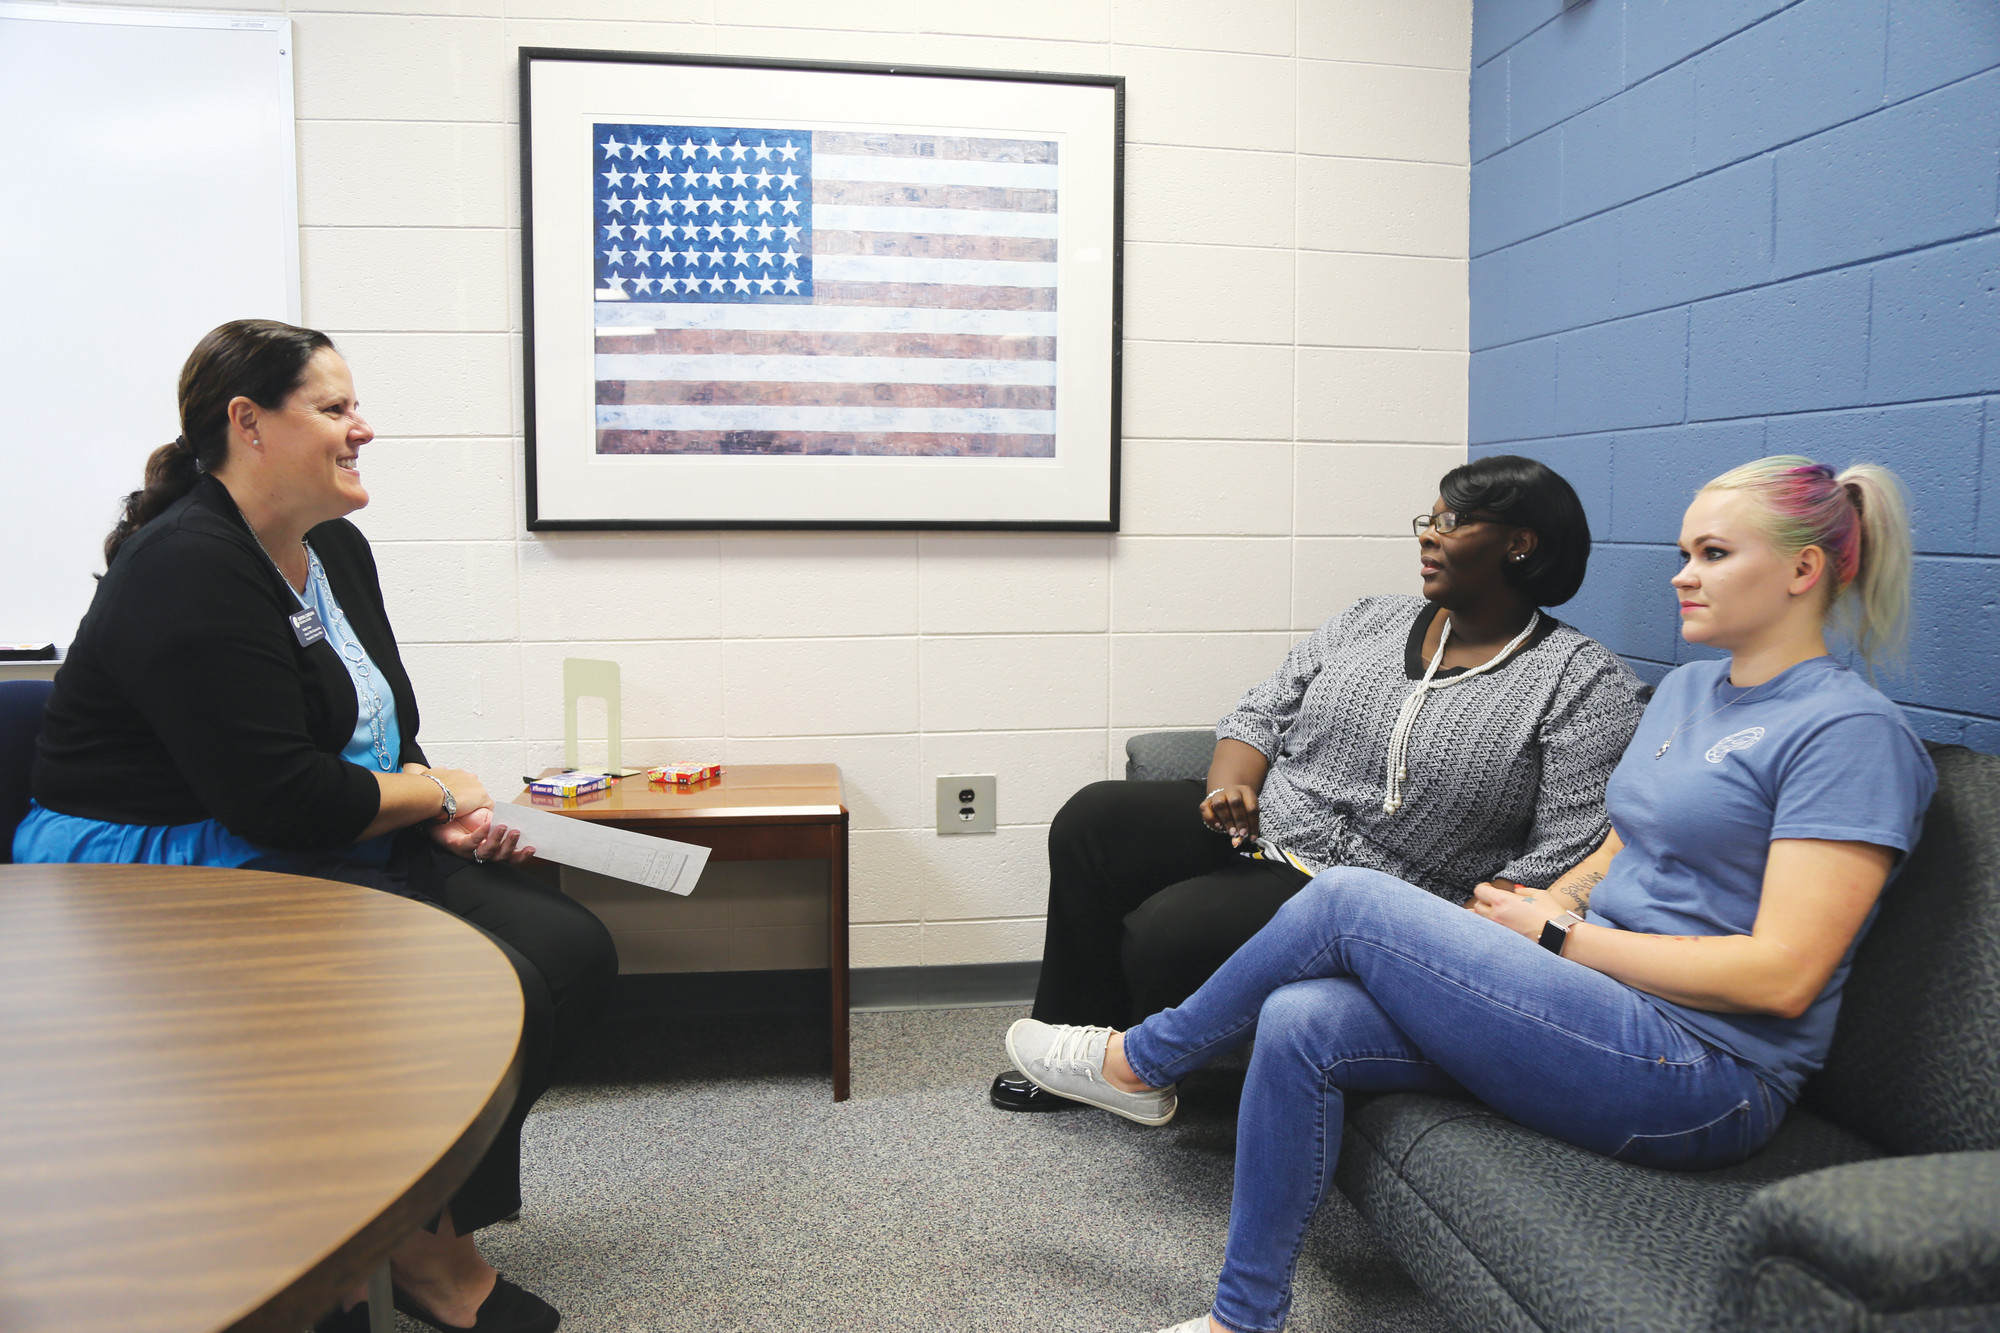 BRUCE MILLS / THE SUMTER ITEMFrom left, Central Carolina Technical College's Veterans' Affairs Representative Heather Hearn talks Wednesday with military veteran students Margaret Nelson and Rachael Wallace about their experiences at the school.